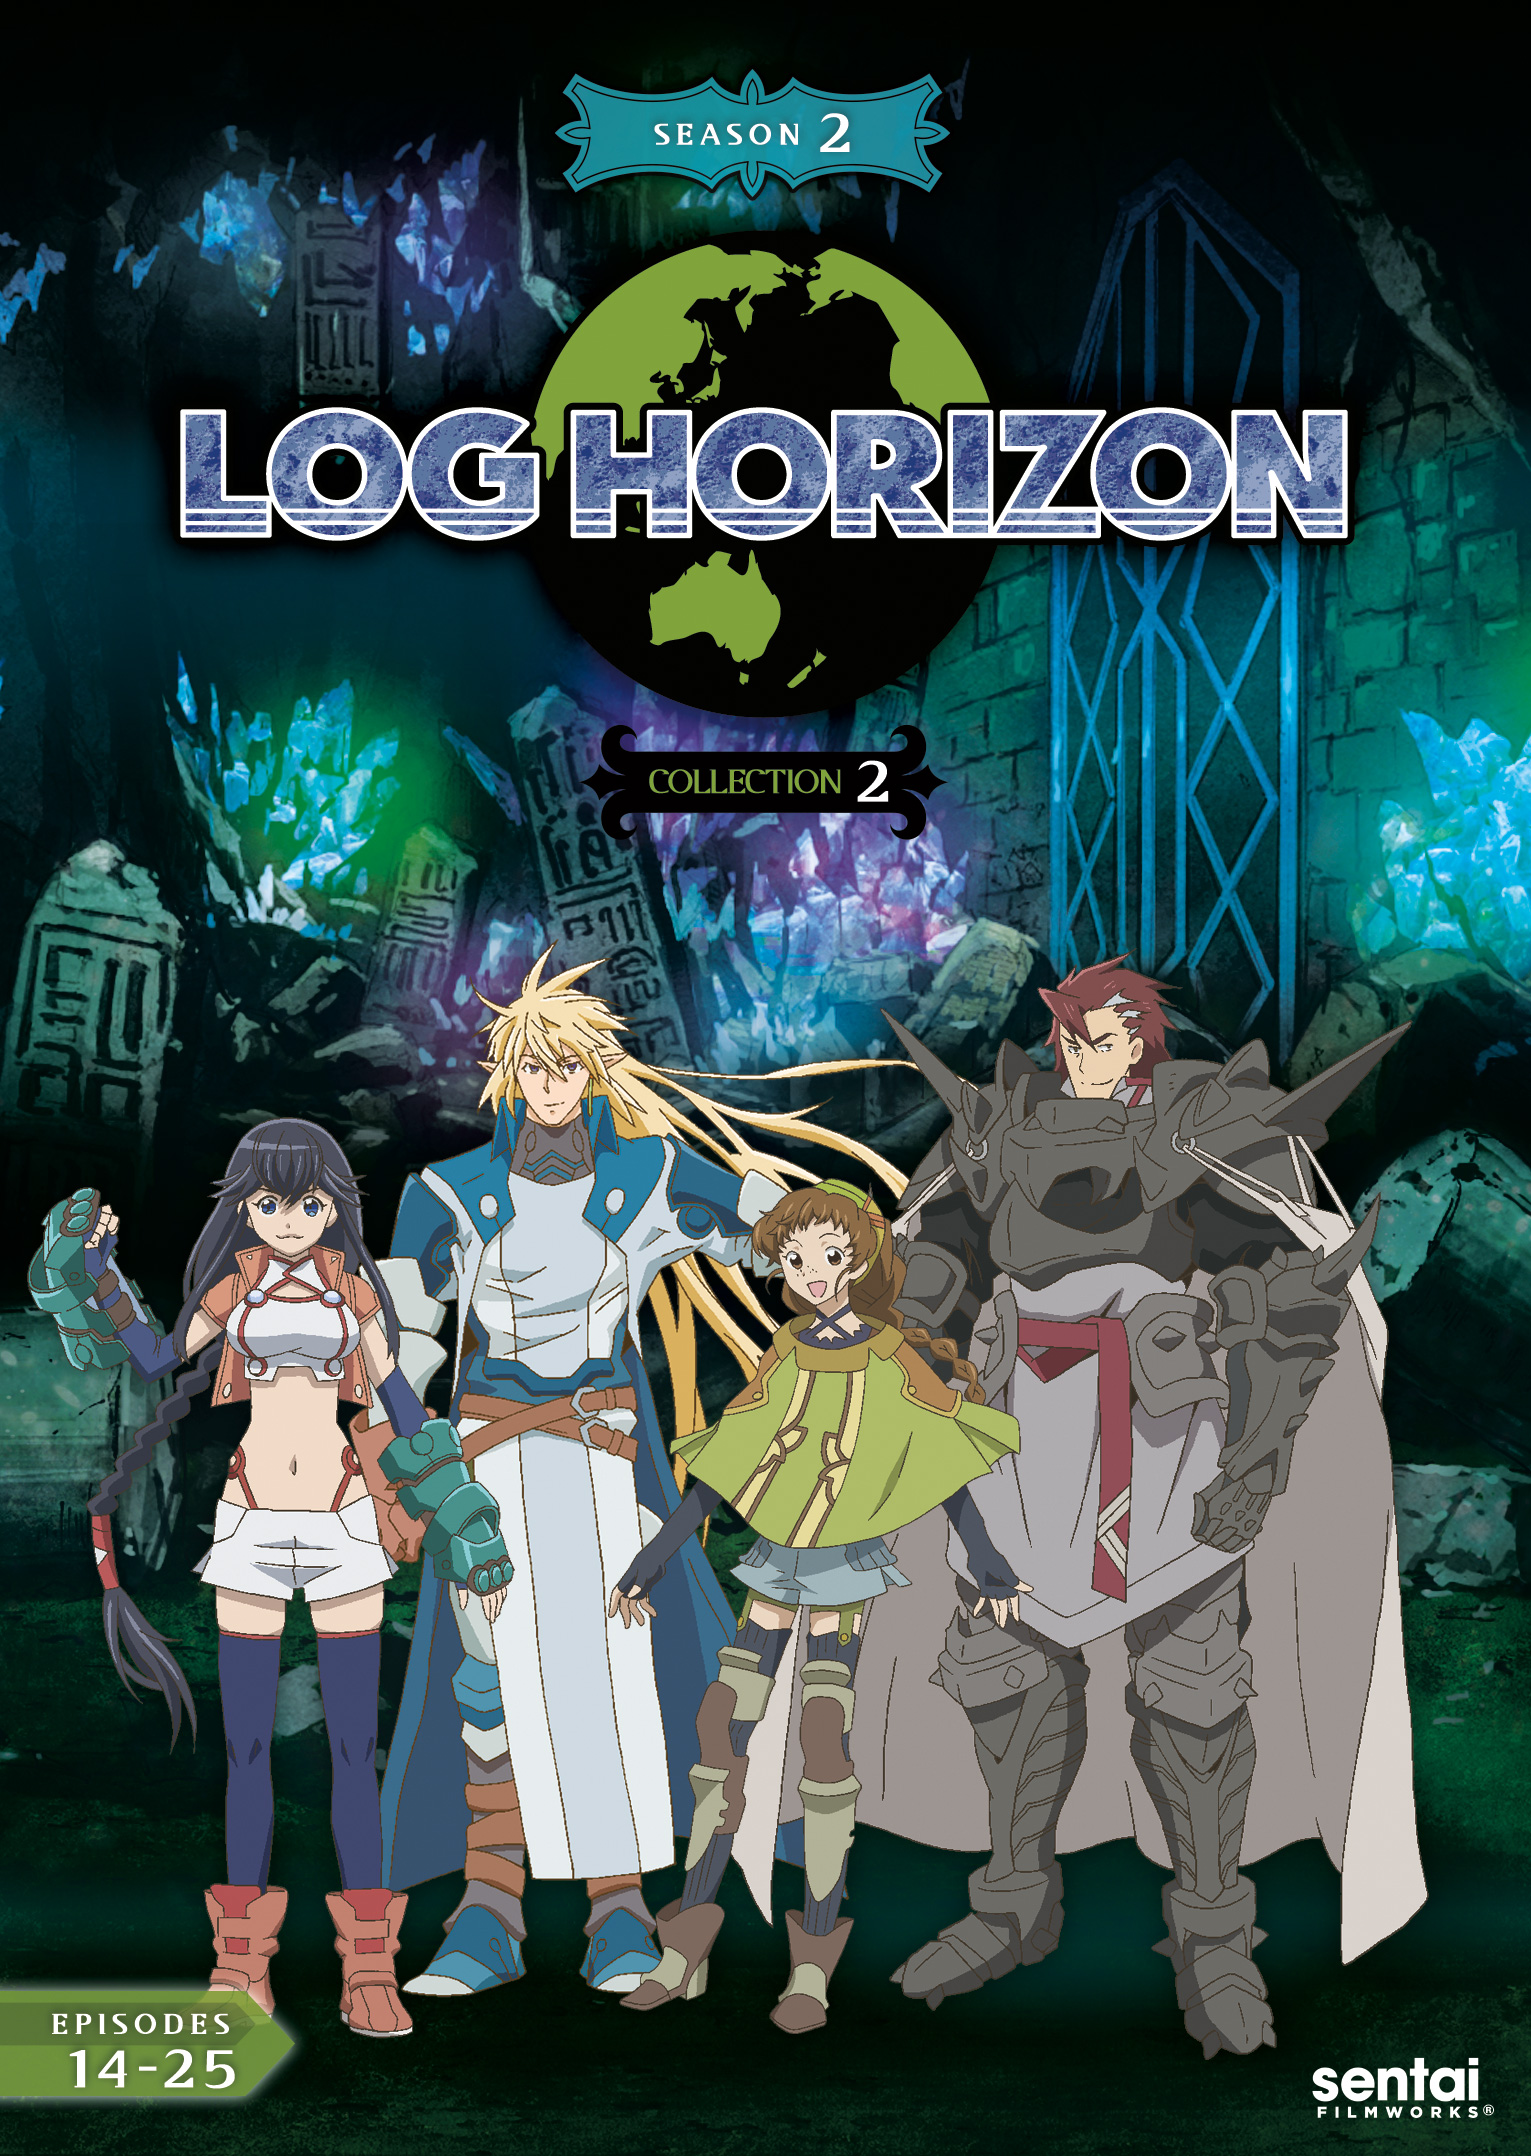 Log Horizon 2 Collection 2 DVD 814131013583